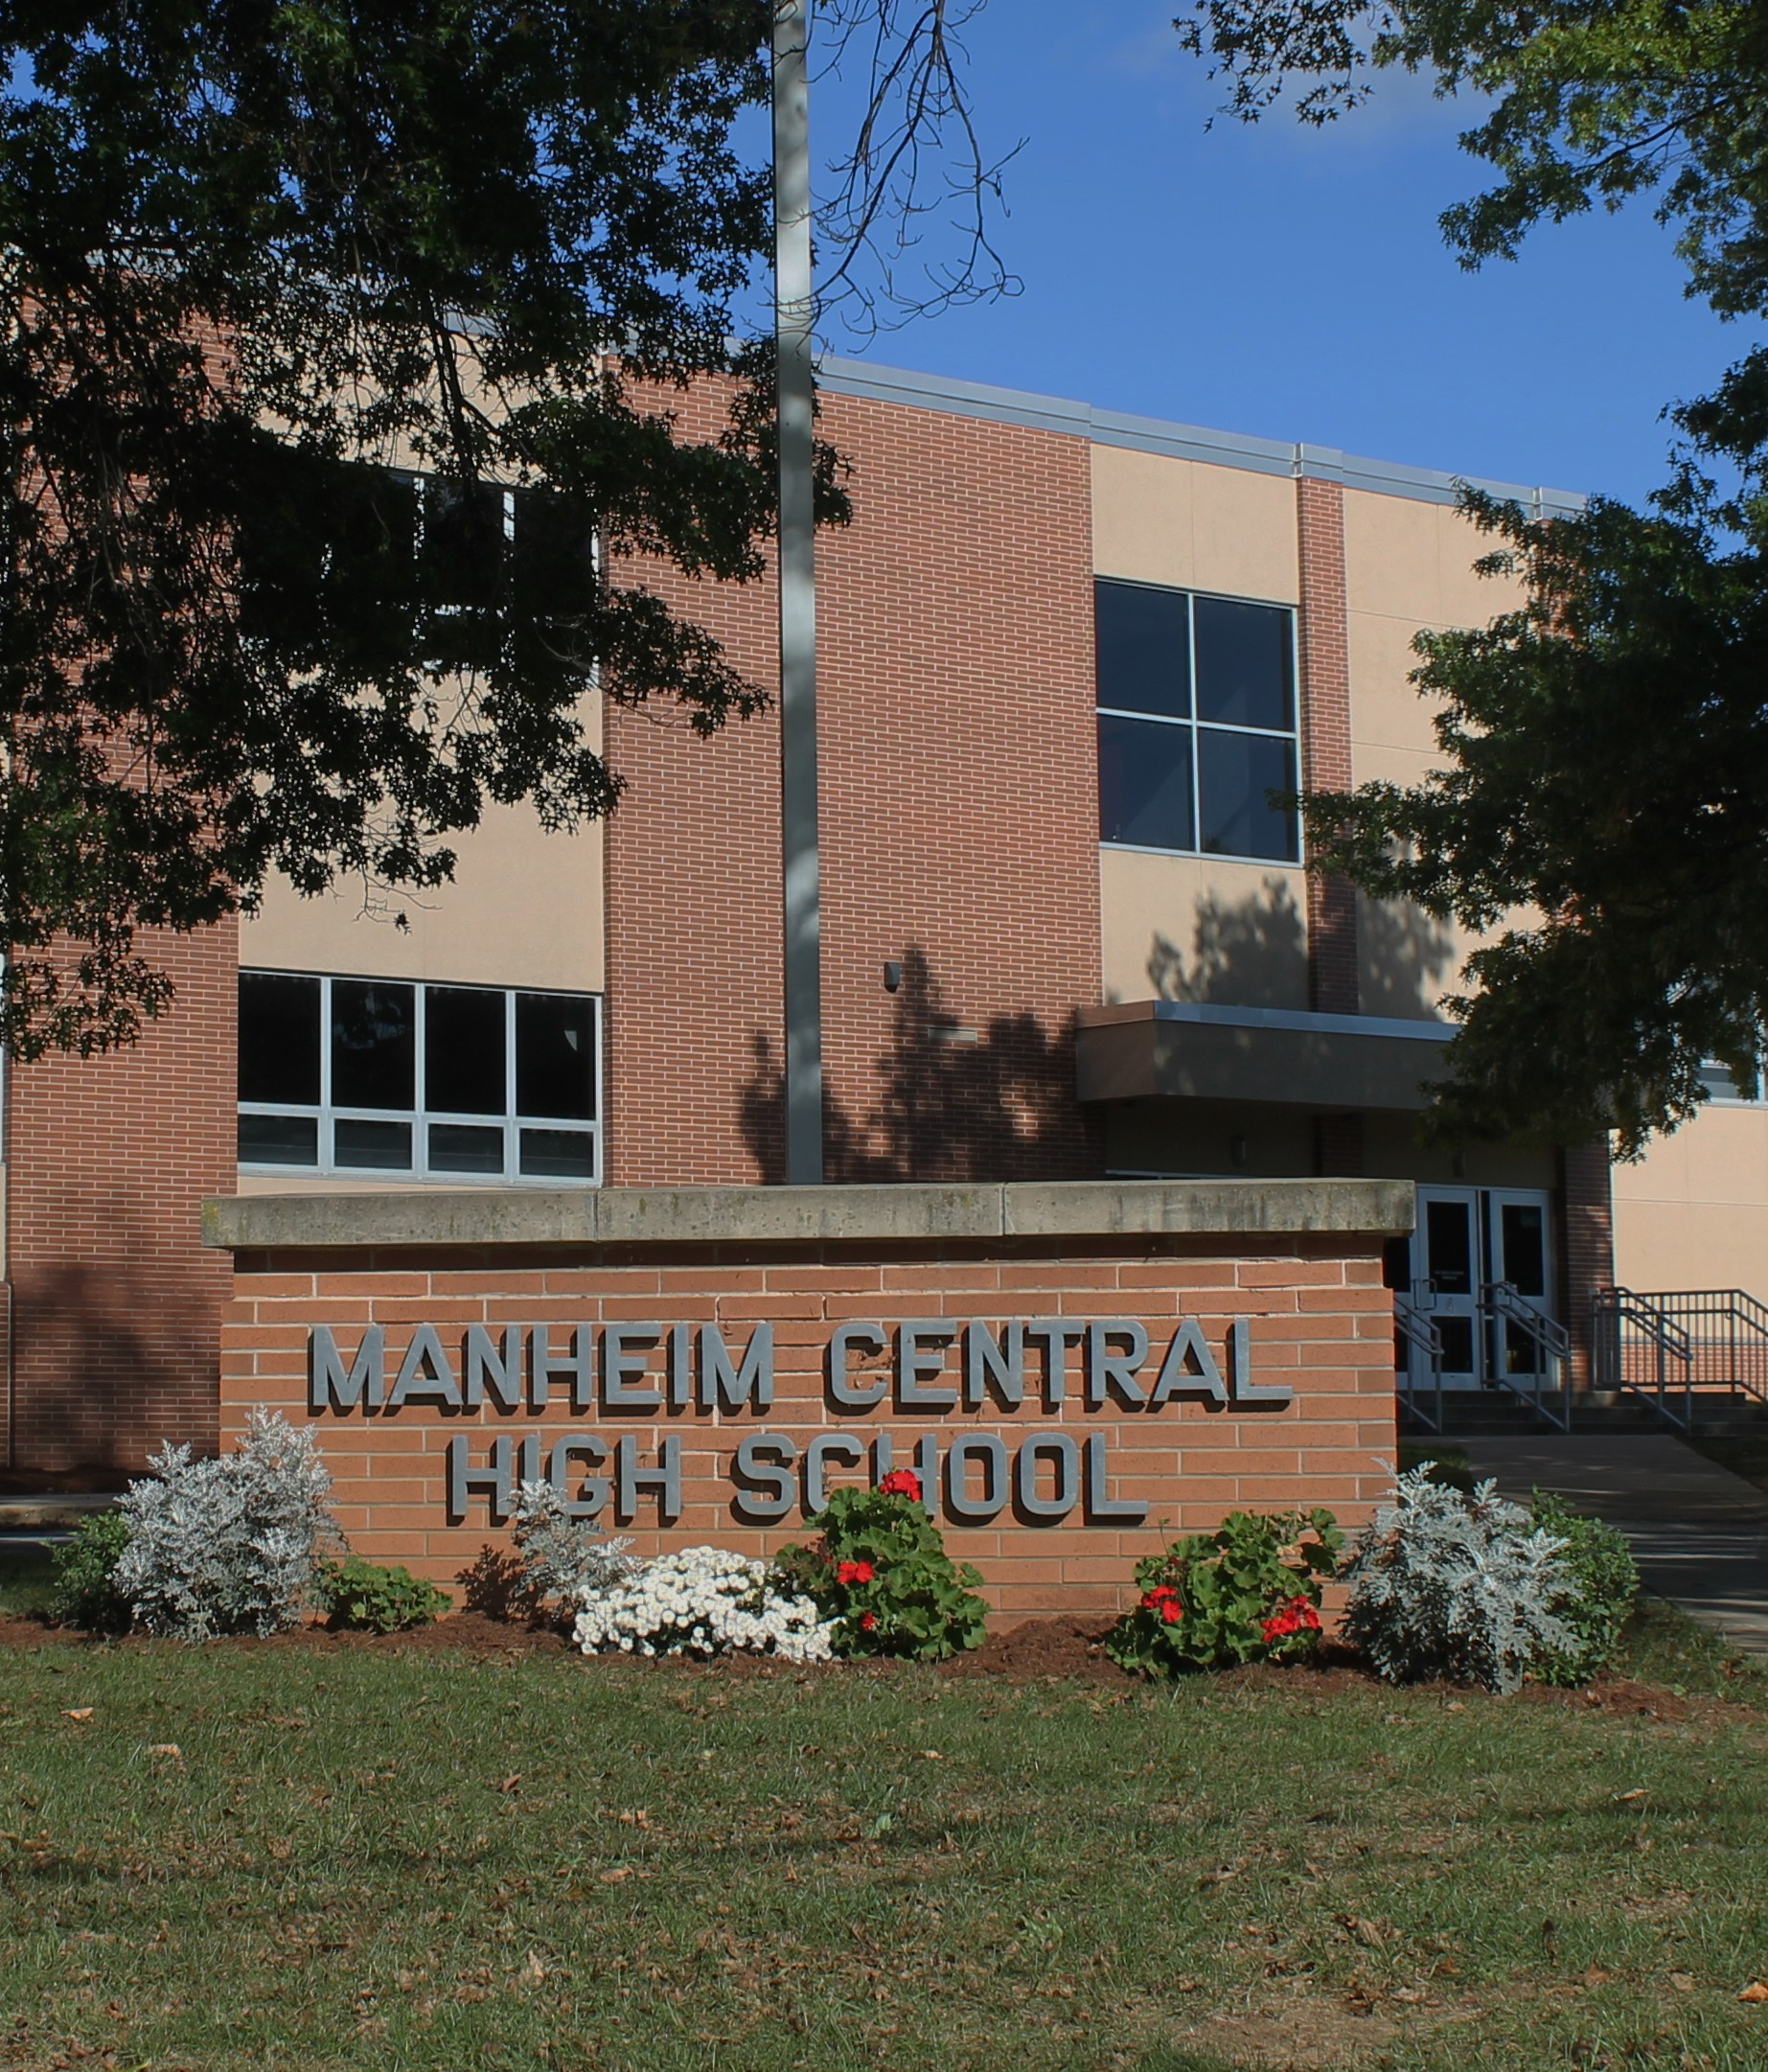 Manheim Central High School